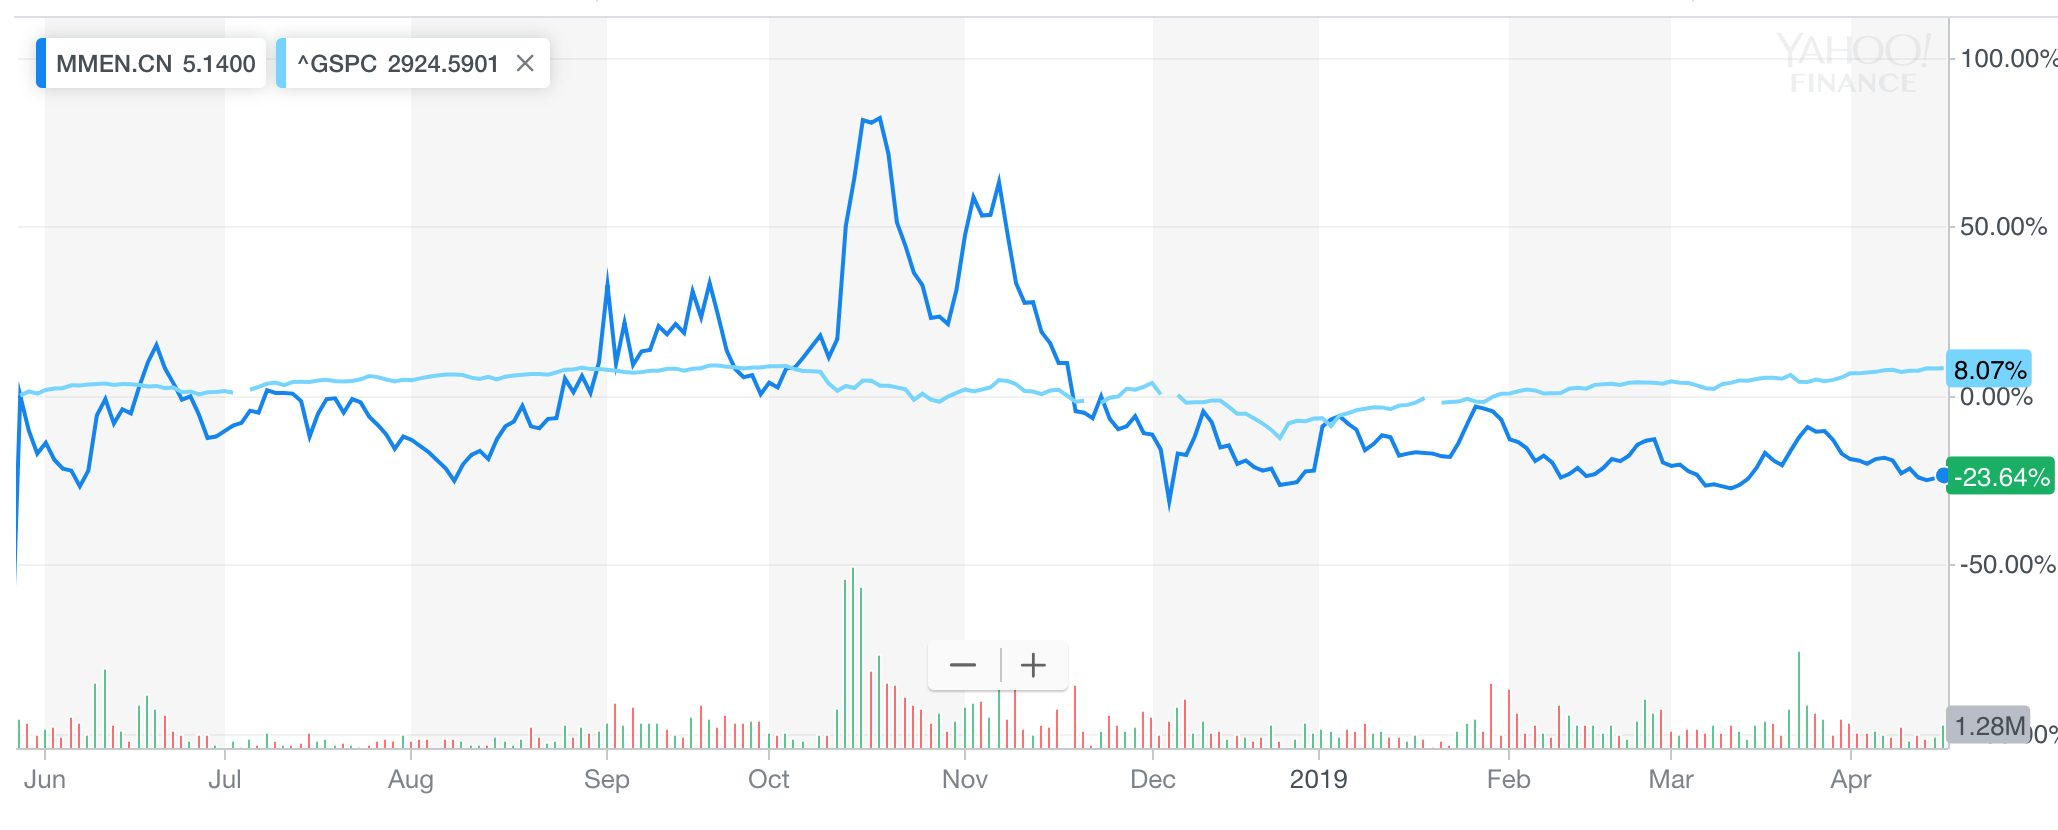 Our MedMen Stock Prediction In 2019 (Buy or Sell